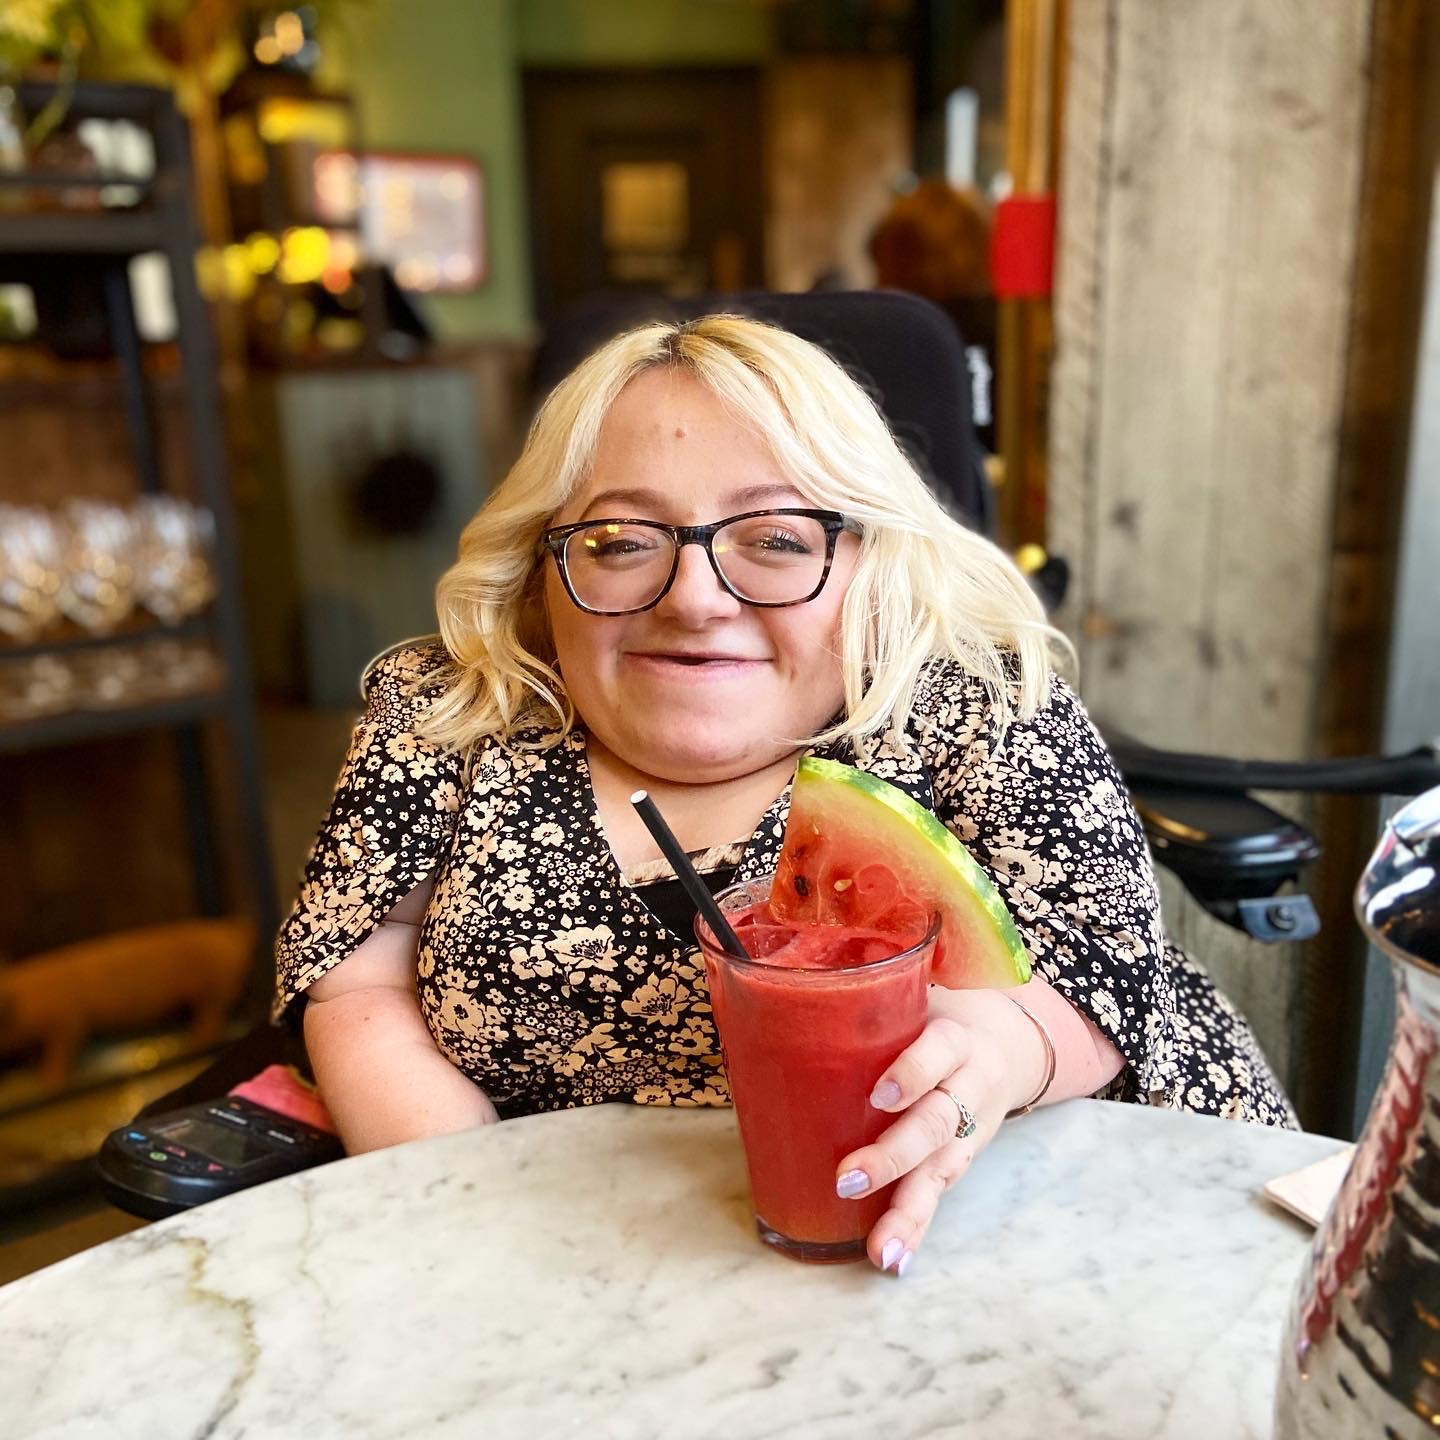 Gem smiling with red watermelon drink